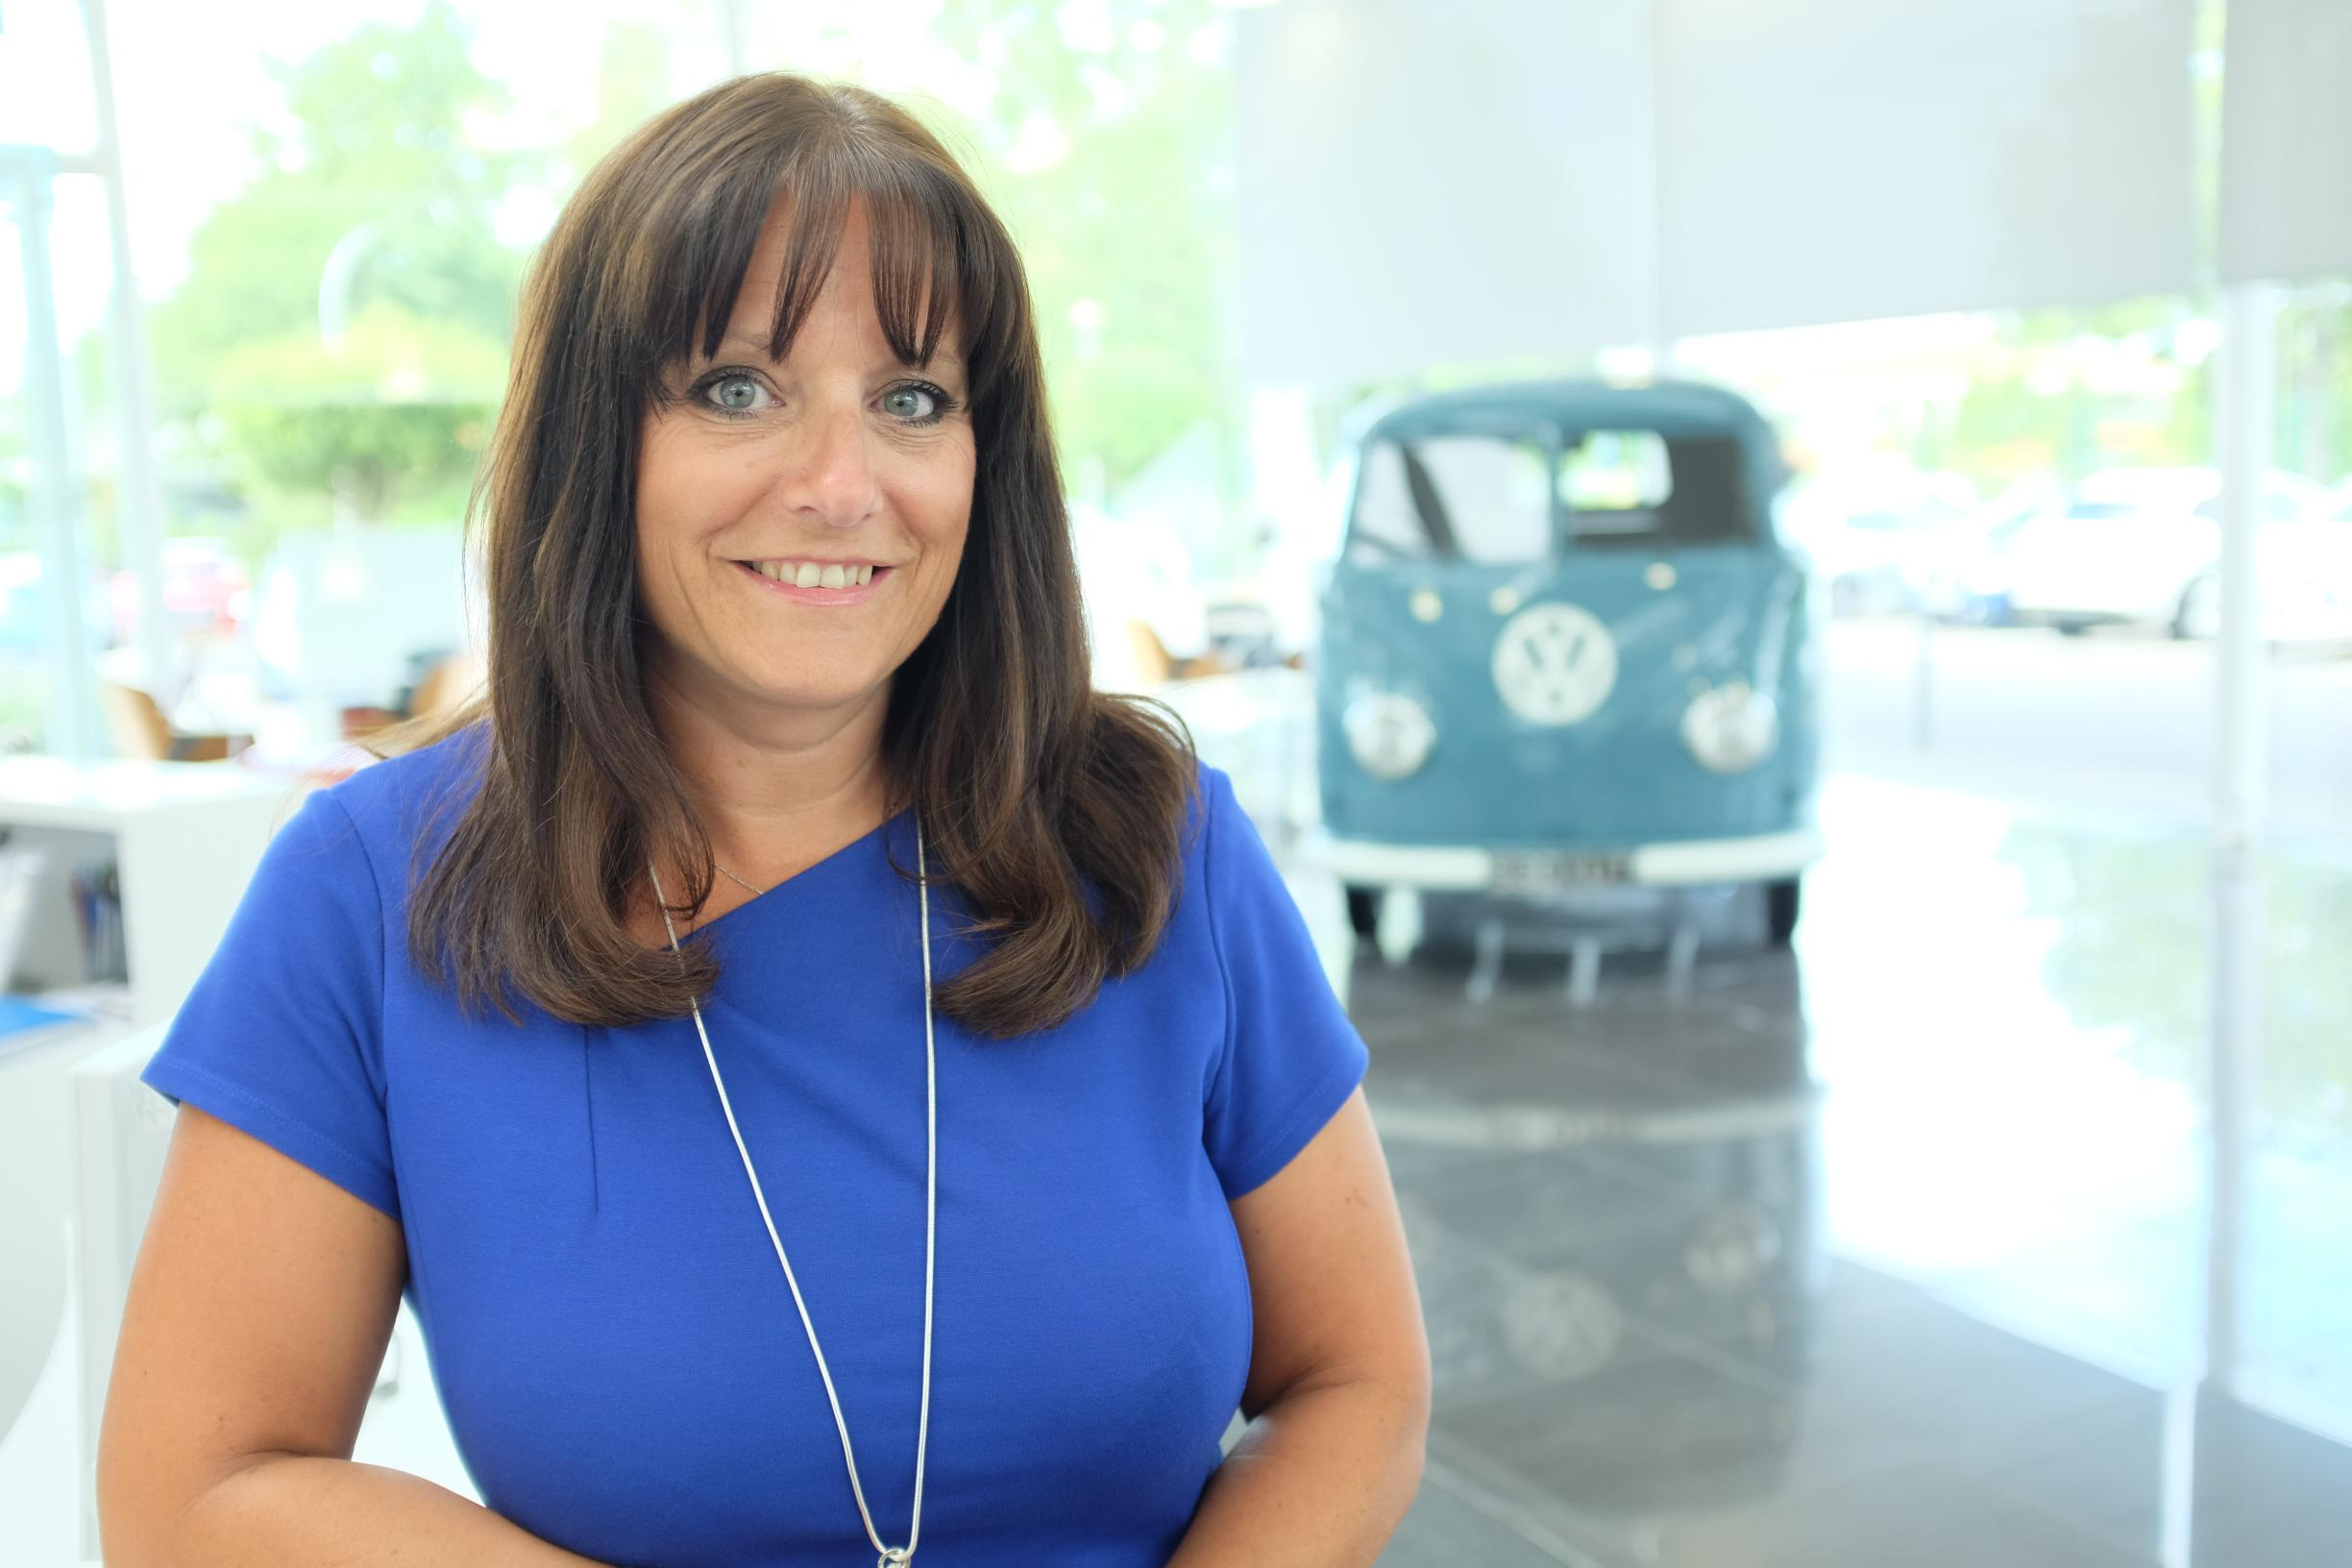 Tracey Perry is the new National Fleet Manager at VW commercial